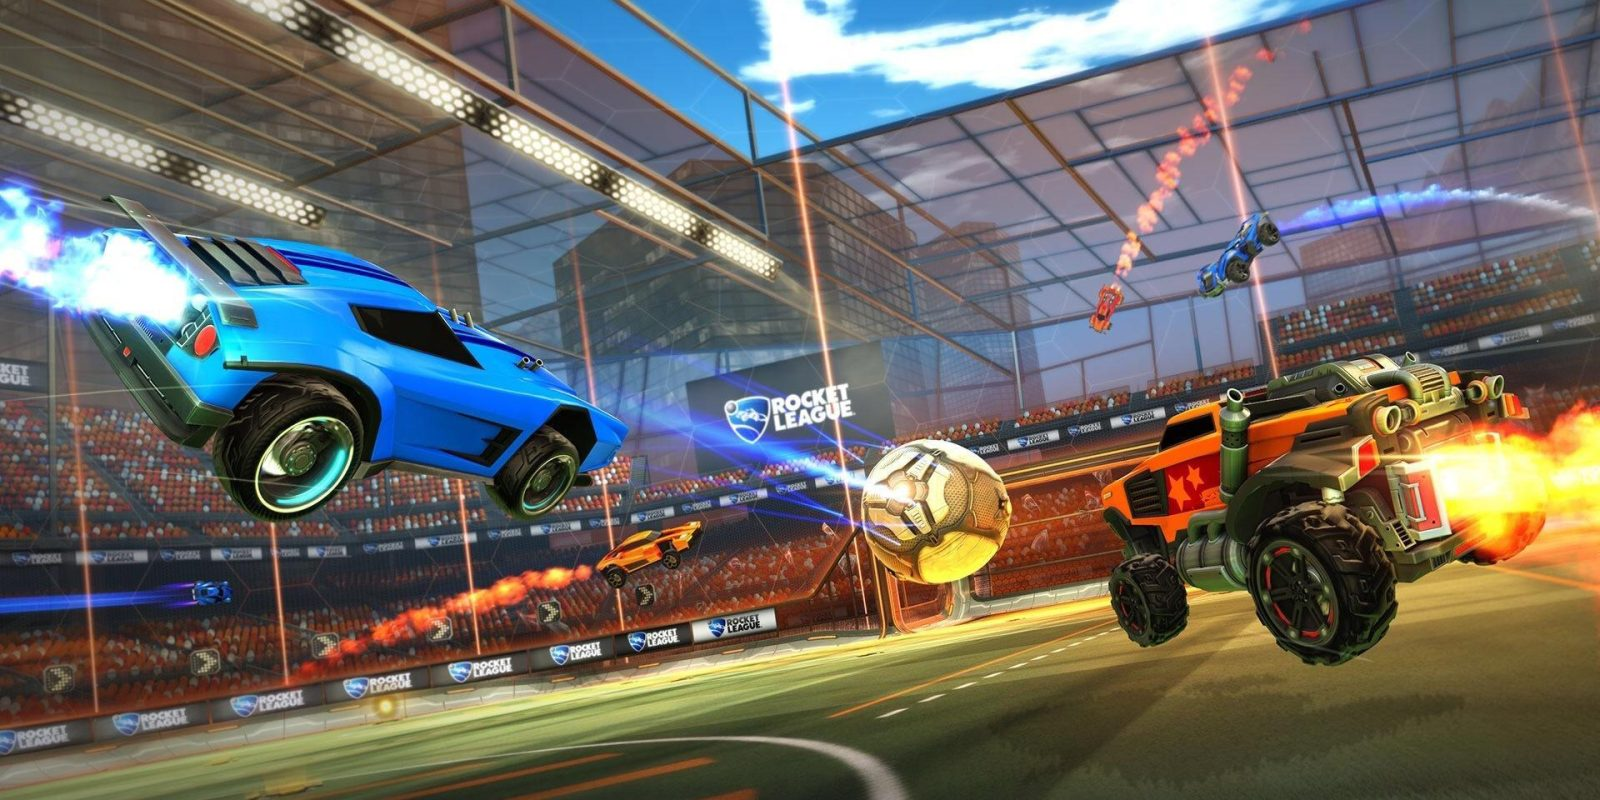 Rocket League comes to life w/ new Hot Wheels iPhone